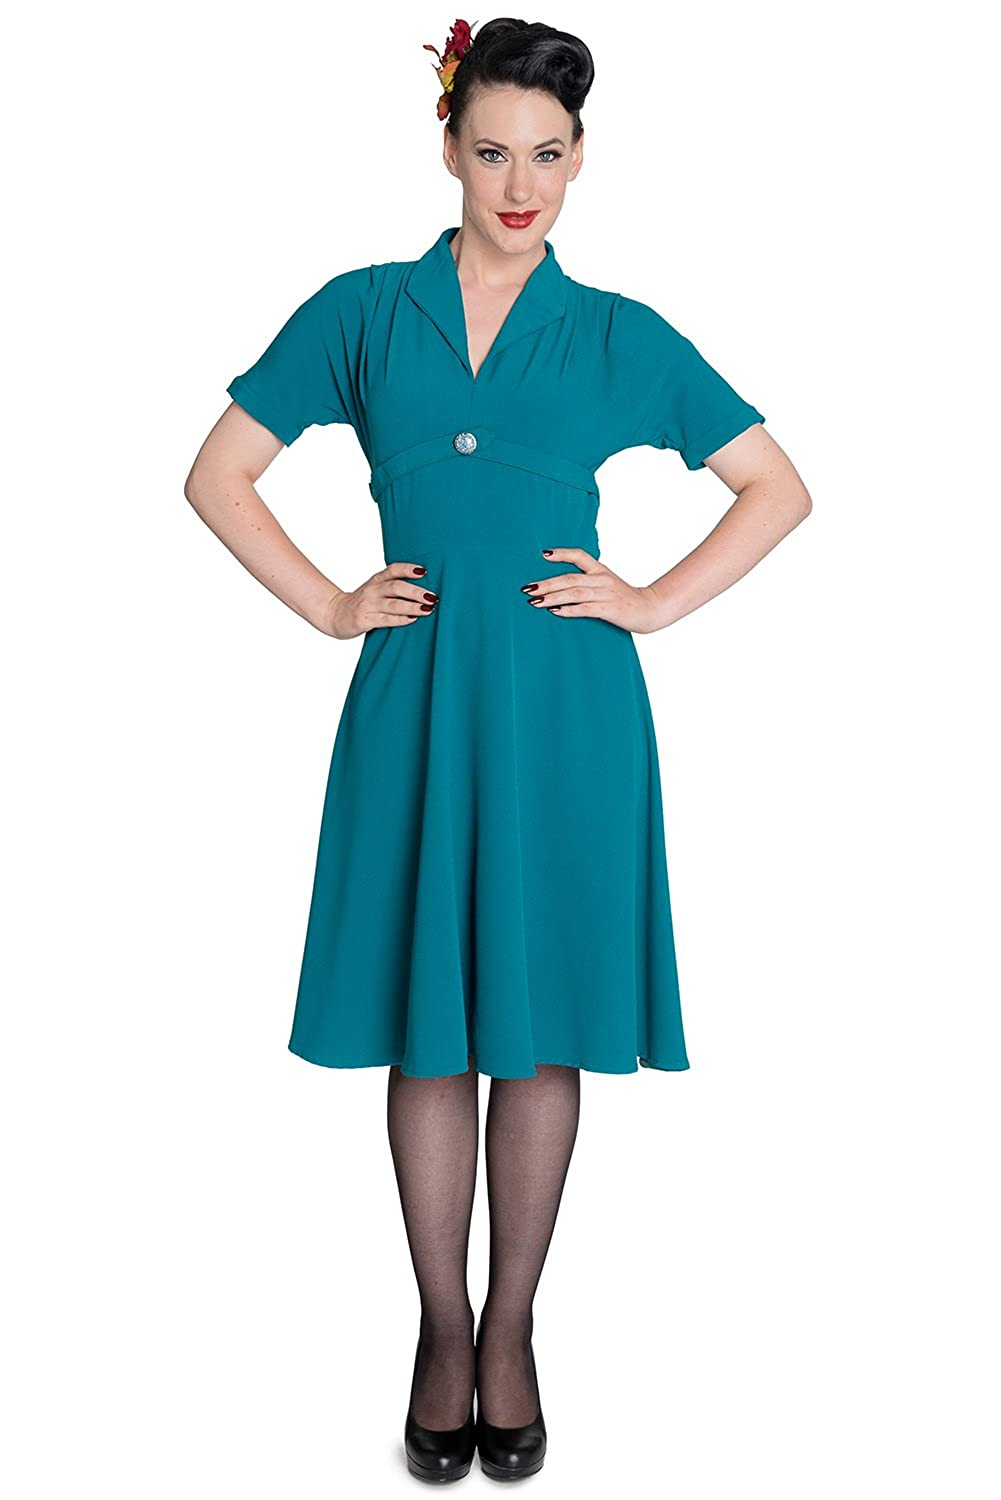 1930s Day Dresses, Afternoon Dresses History 40s Hell Bunny Jocelyn Retro Rockabilly Landgirl Dress $34.99 AT vintagedancer.com